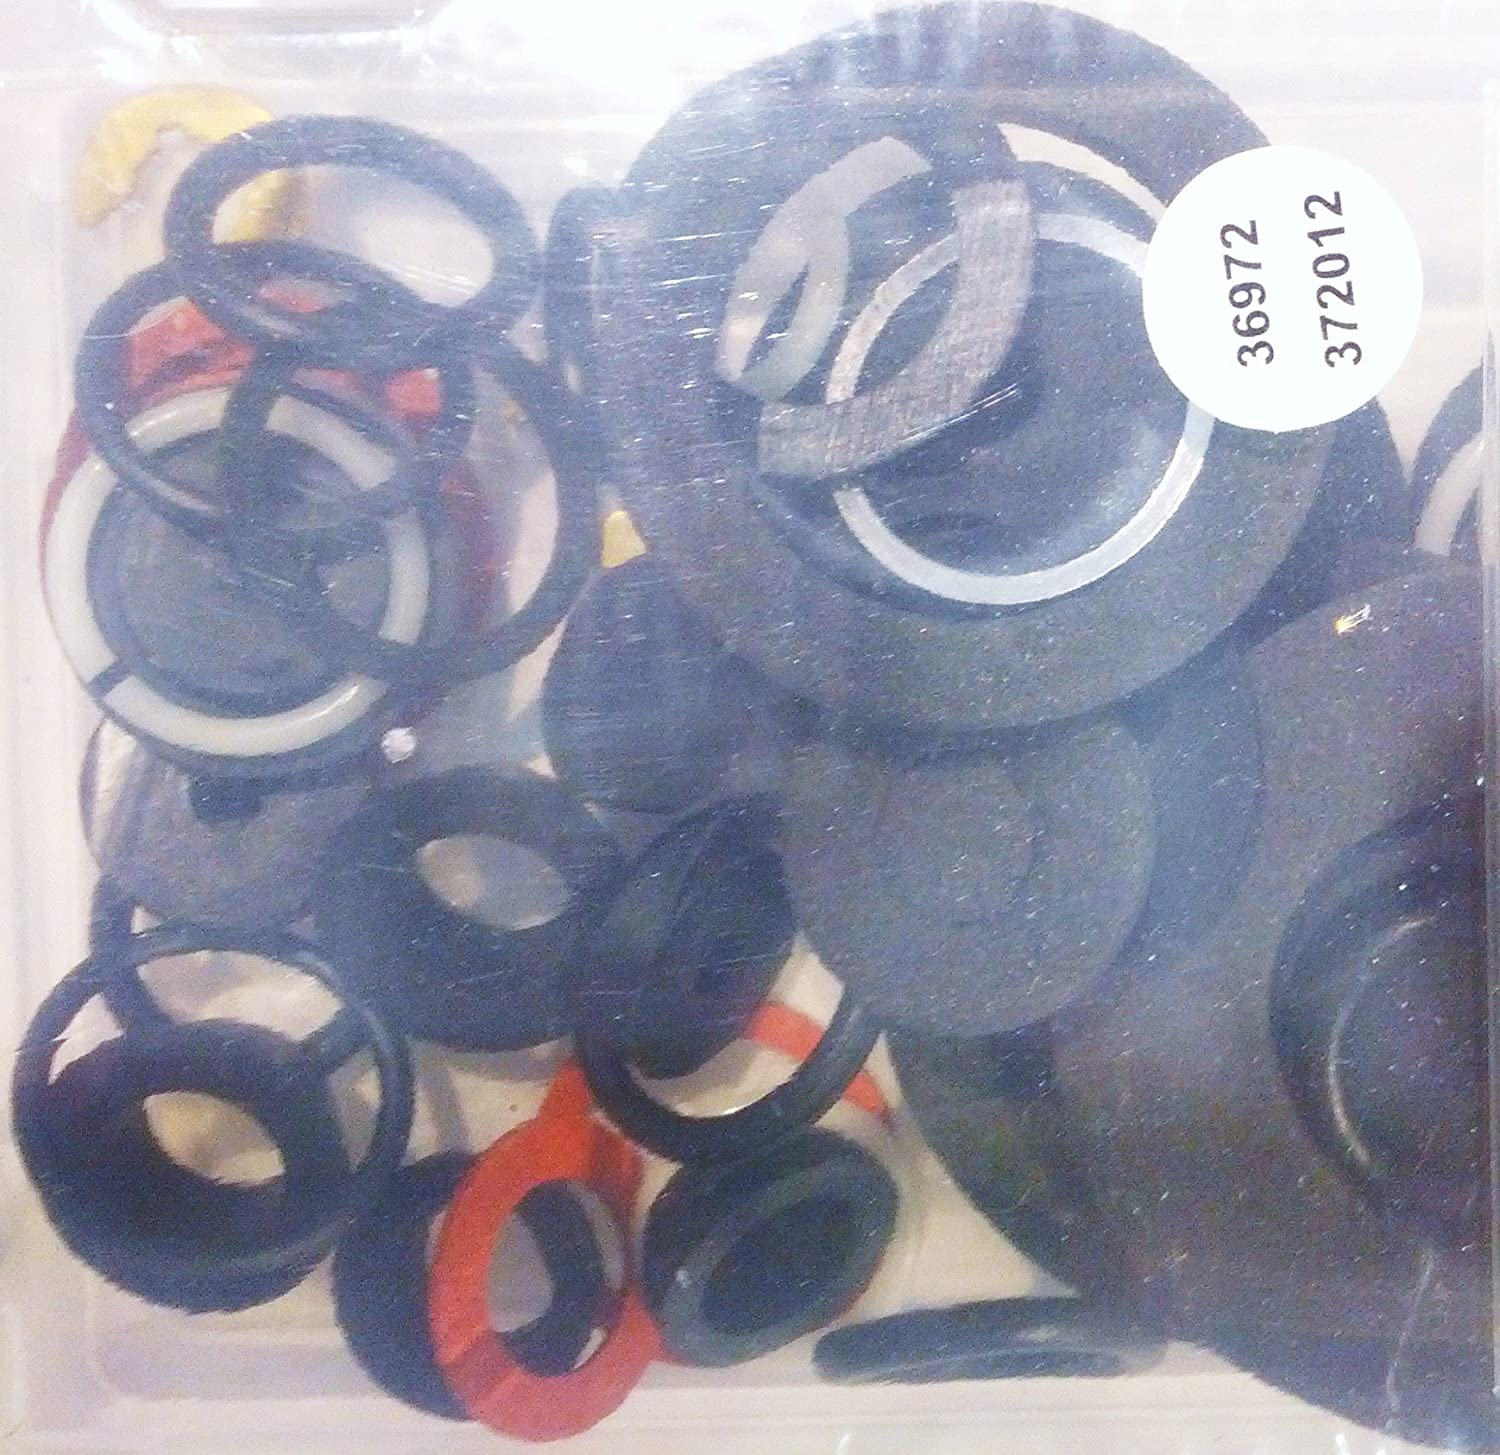 54 Piece Washers and Seals Kit with Storage Case Storehouse